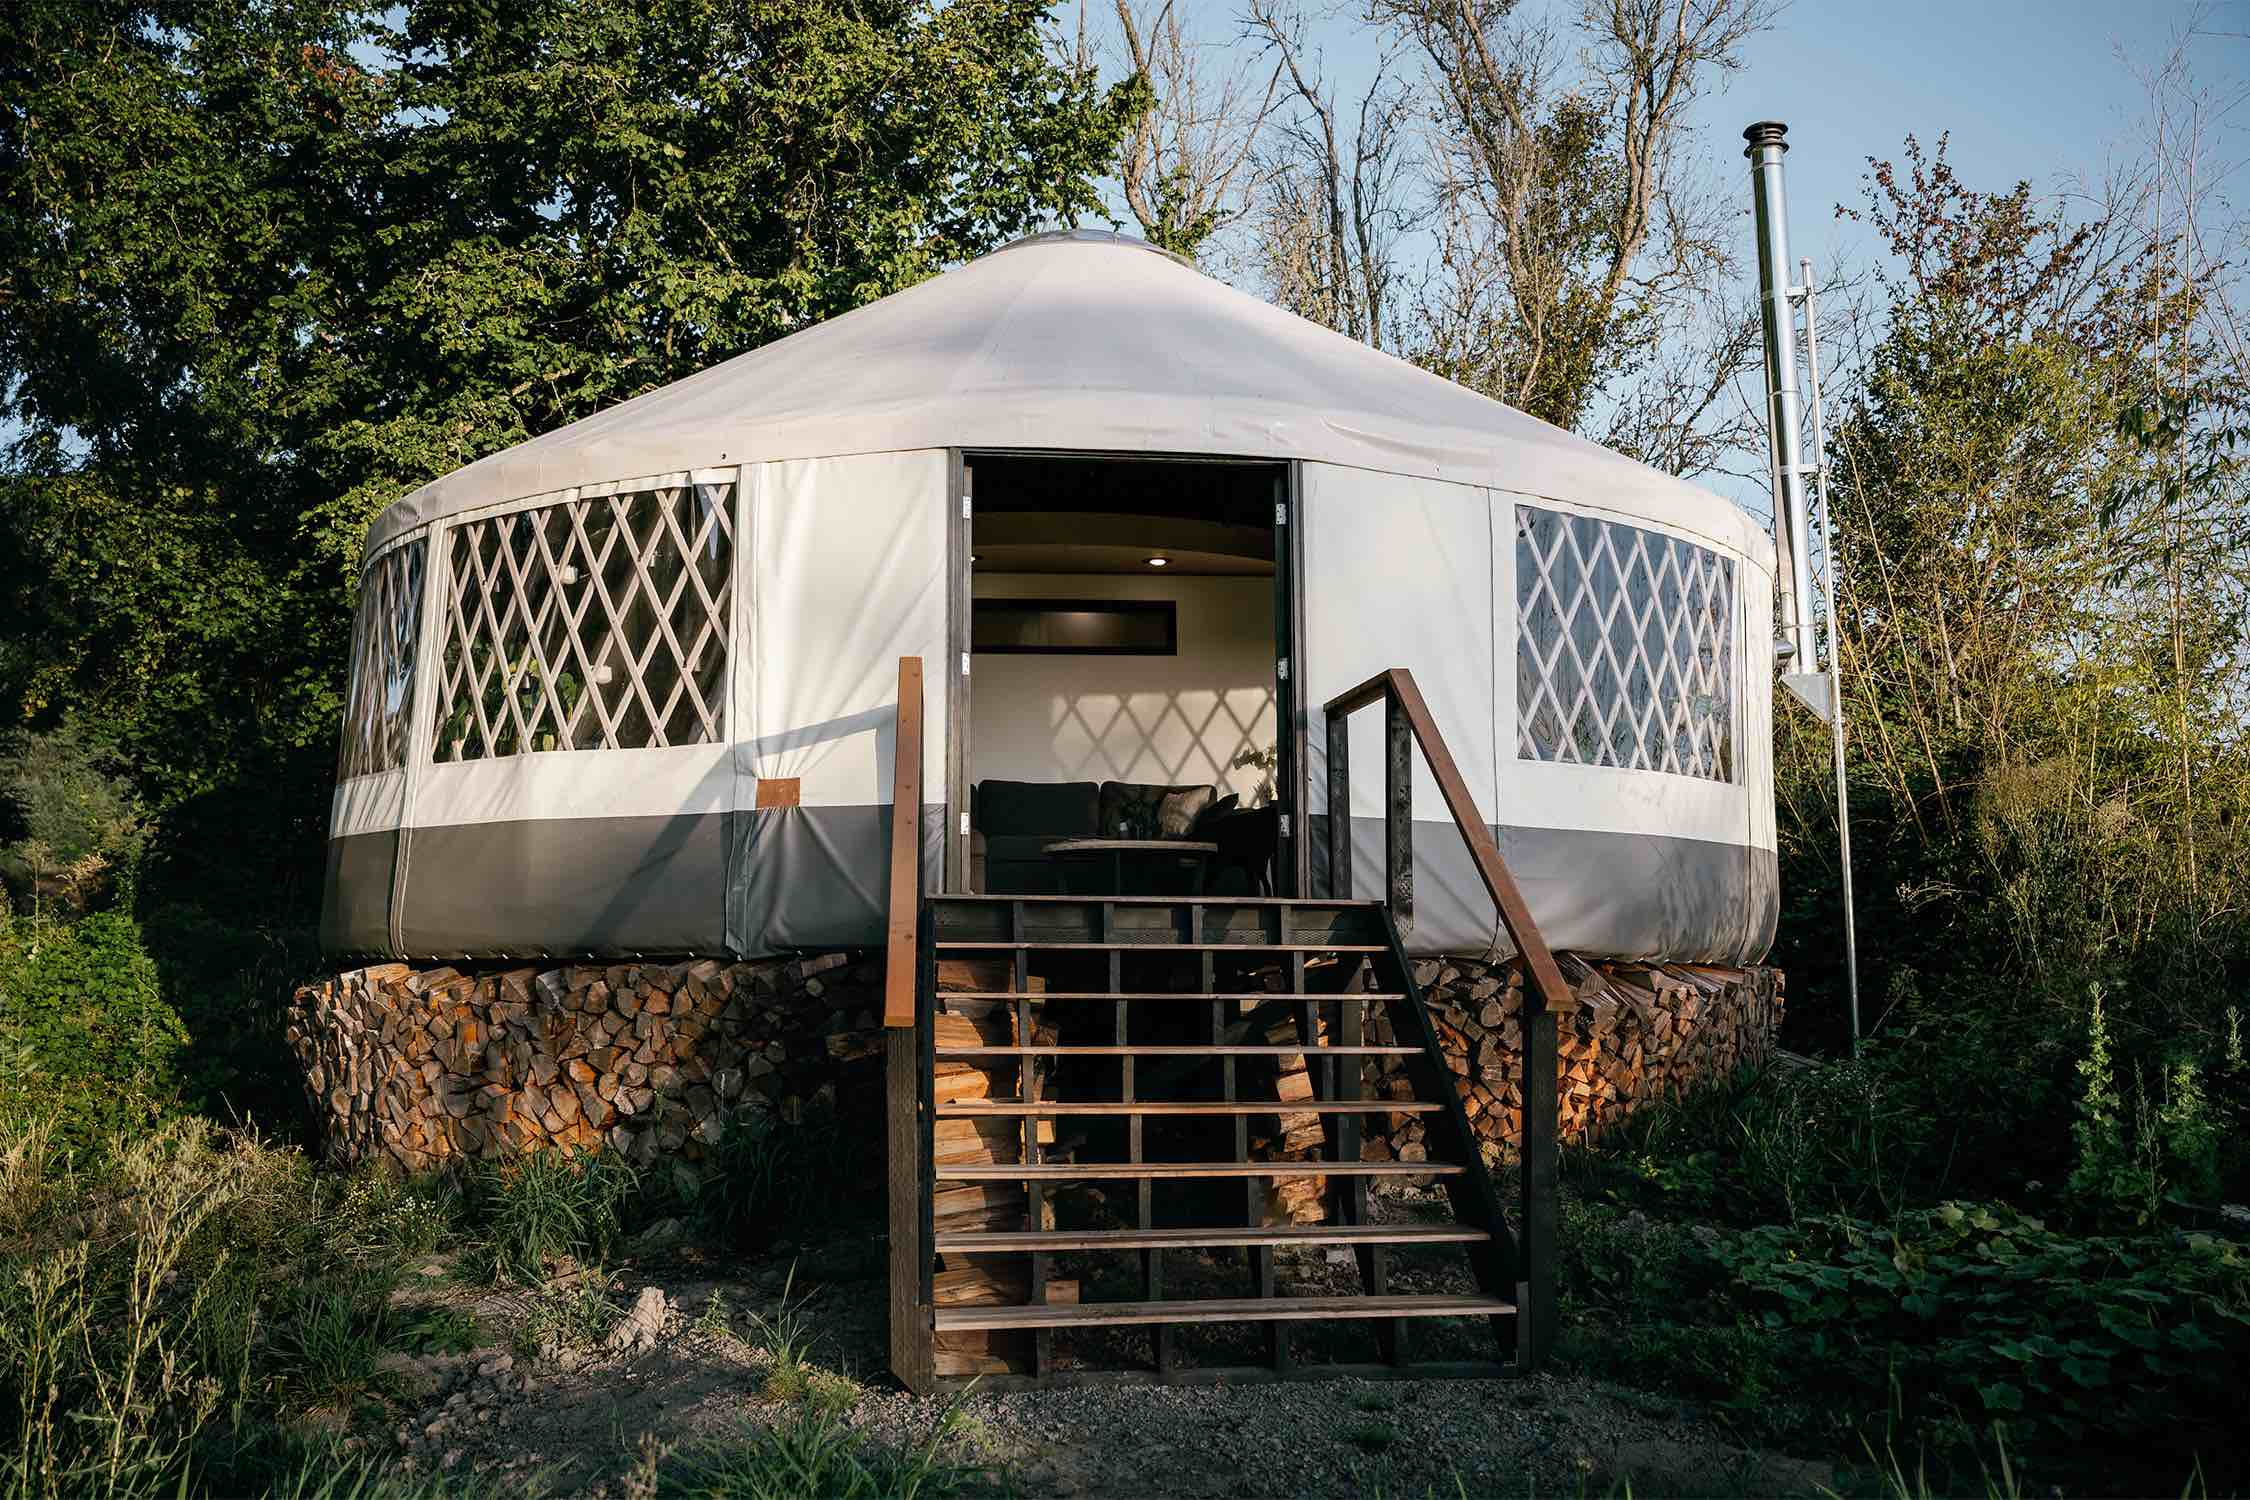 the exterior view of the yurt on an island